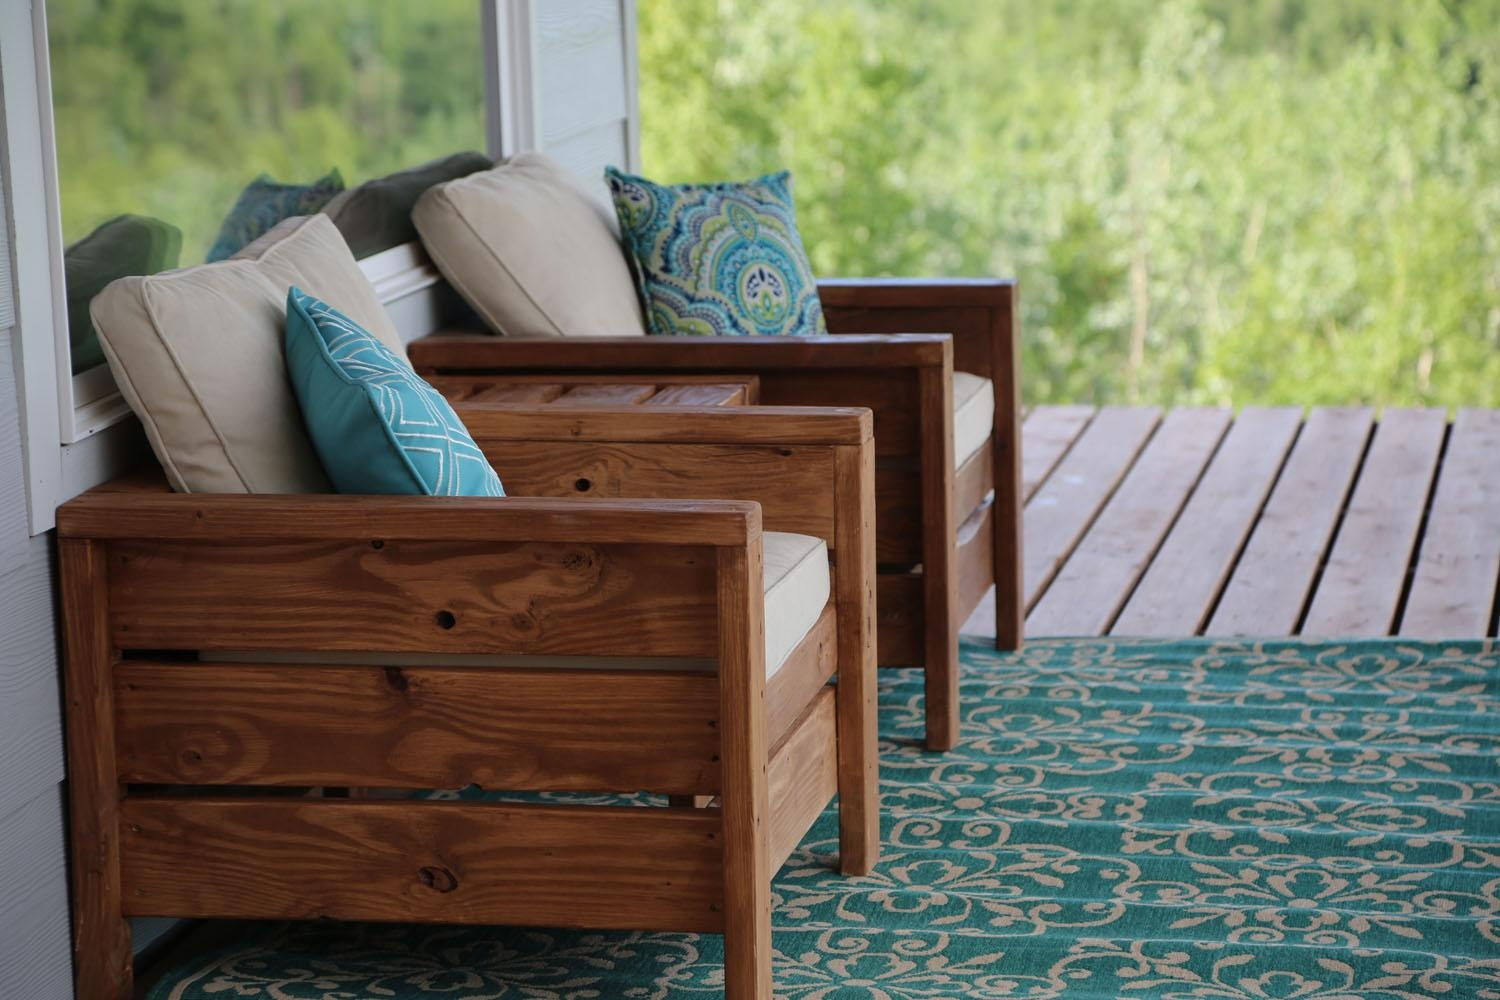 Ana White | Woodworking Projects Regarding Ana White Outdoor Sofas (View 16 of 20)